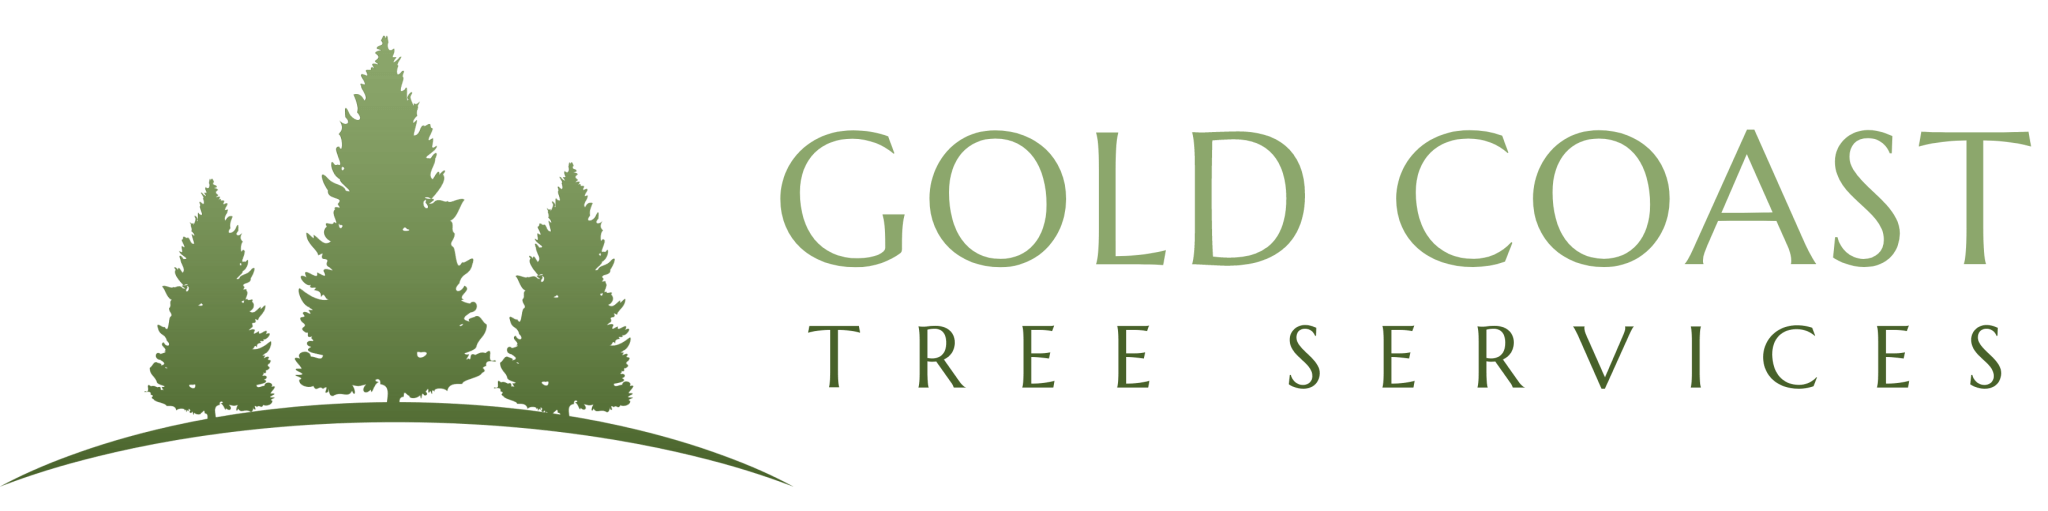 Gold Coast Tree Services